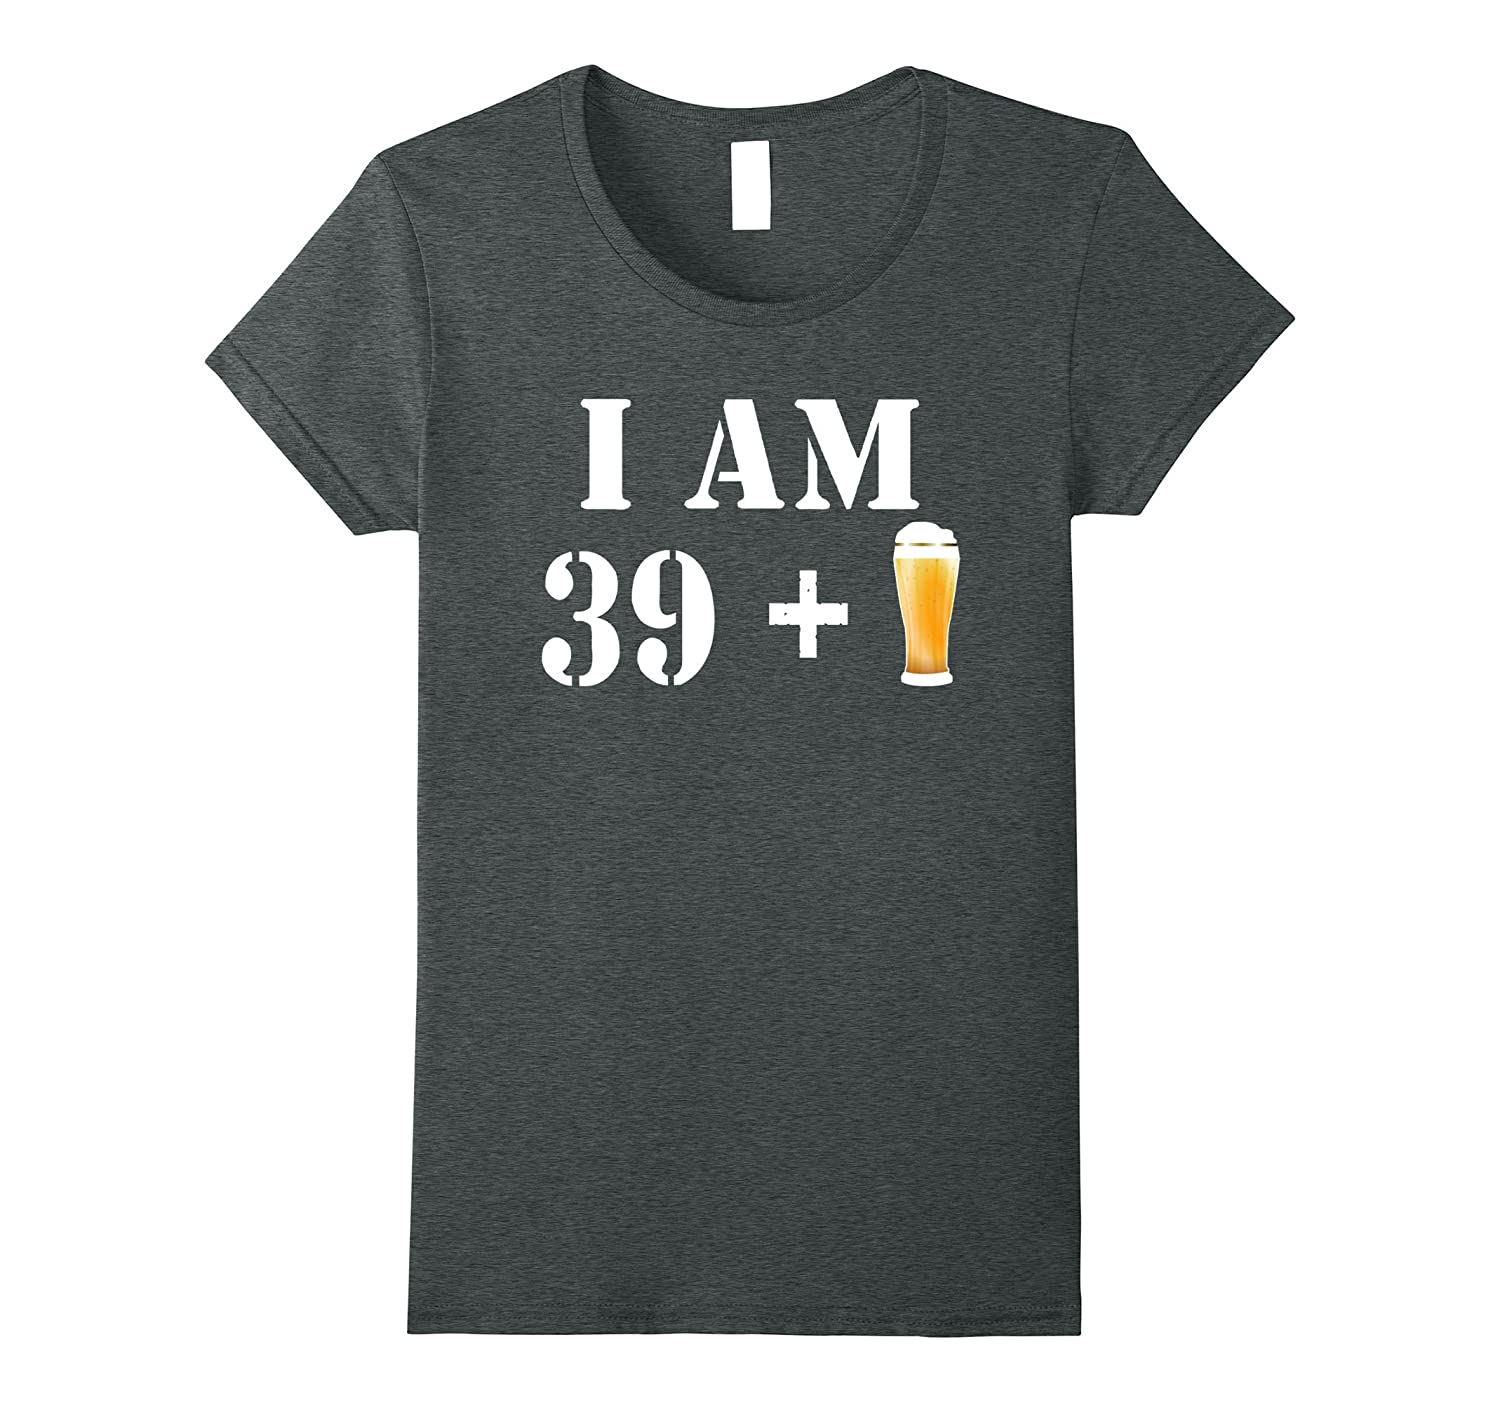 40th Birthday T-Shirt Funny Vintage Gift Idea For Beer Lover